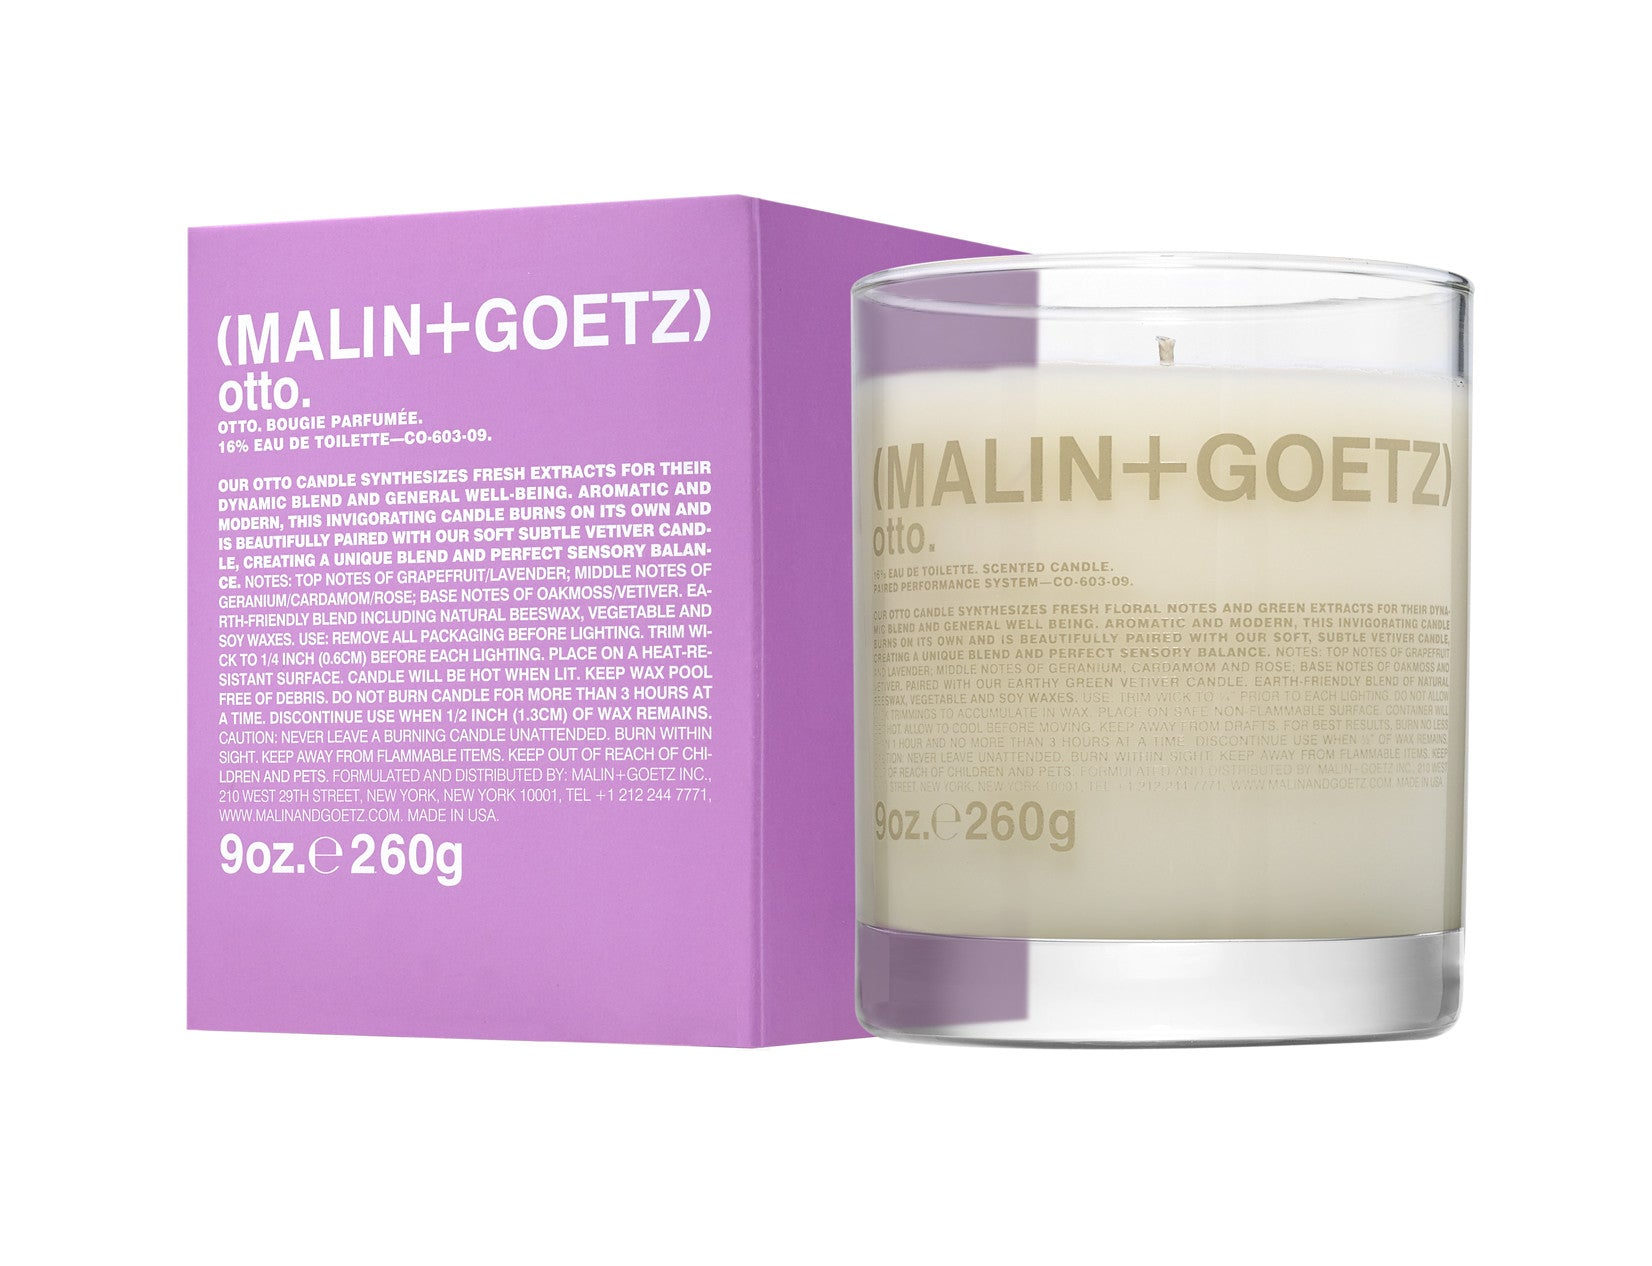 (MALIN+GOETZ) otto candle., Fragrance - New London Pharmacy